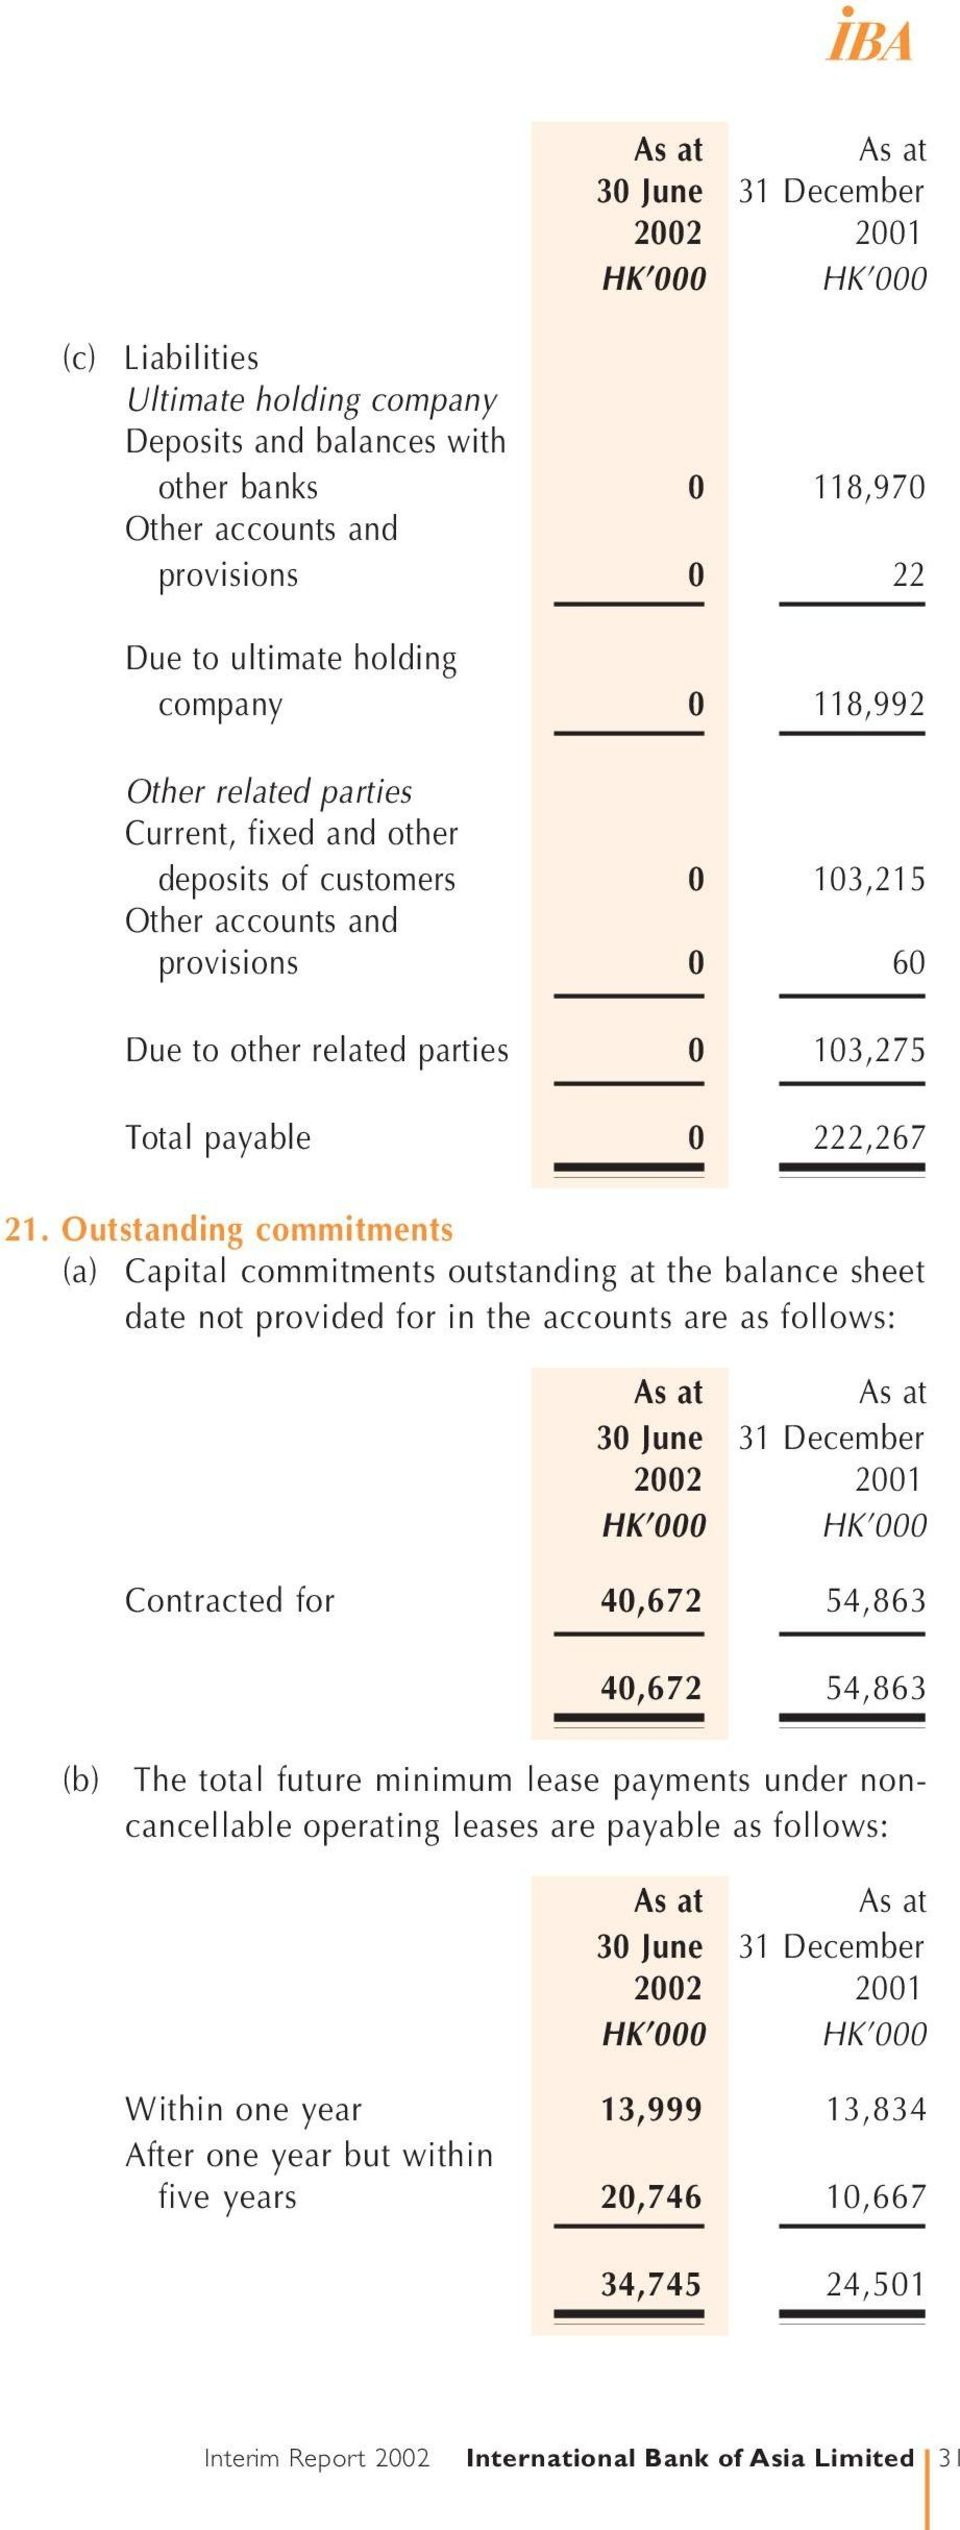 Outstanding commitments (a) Capital commitments outstanding at the balance sheet date not provided for in the accounts are as follows: (b) Contracted for 40,672 54,863 40,672 54,863 The total